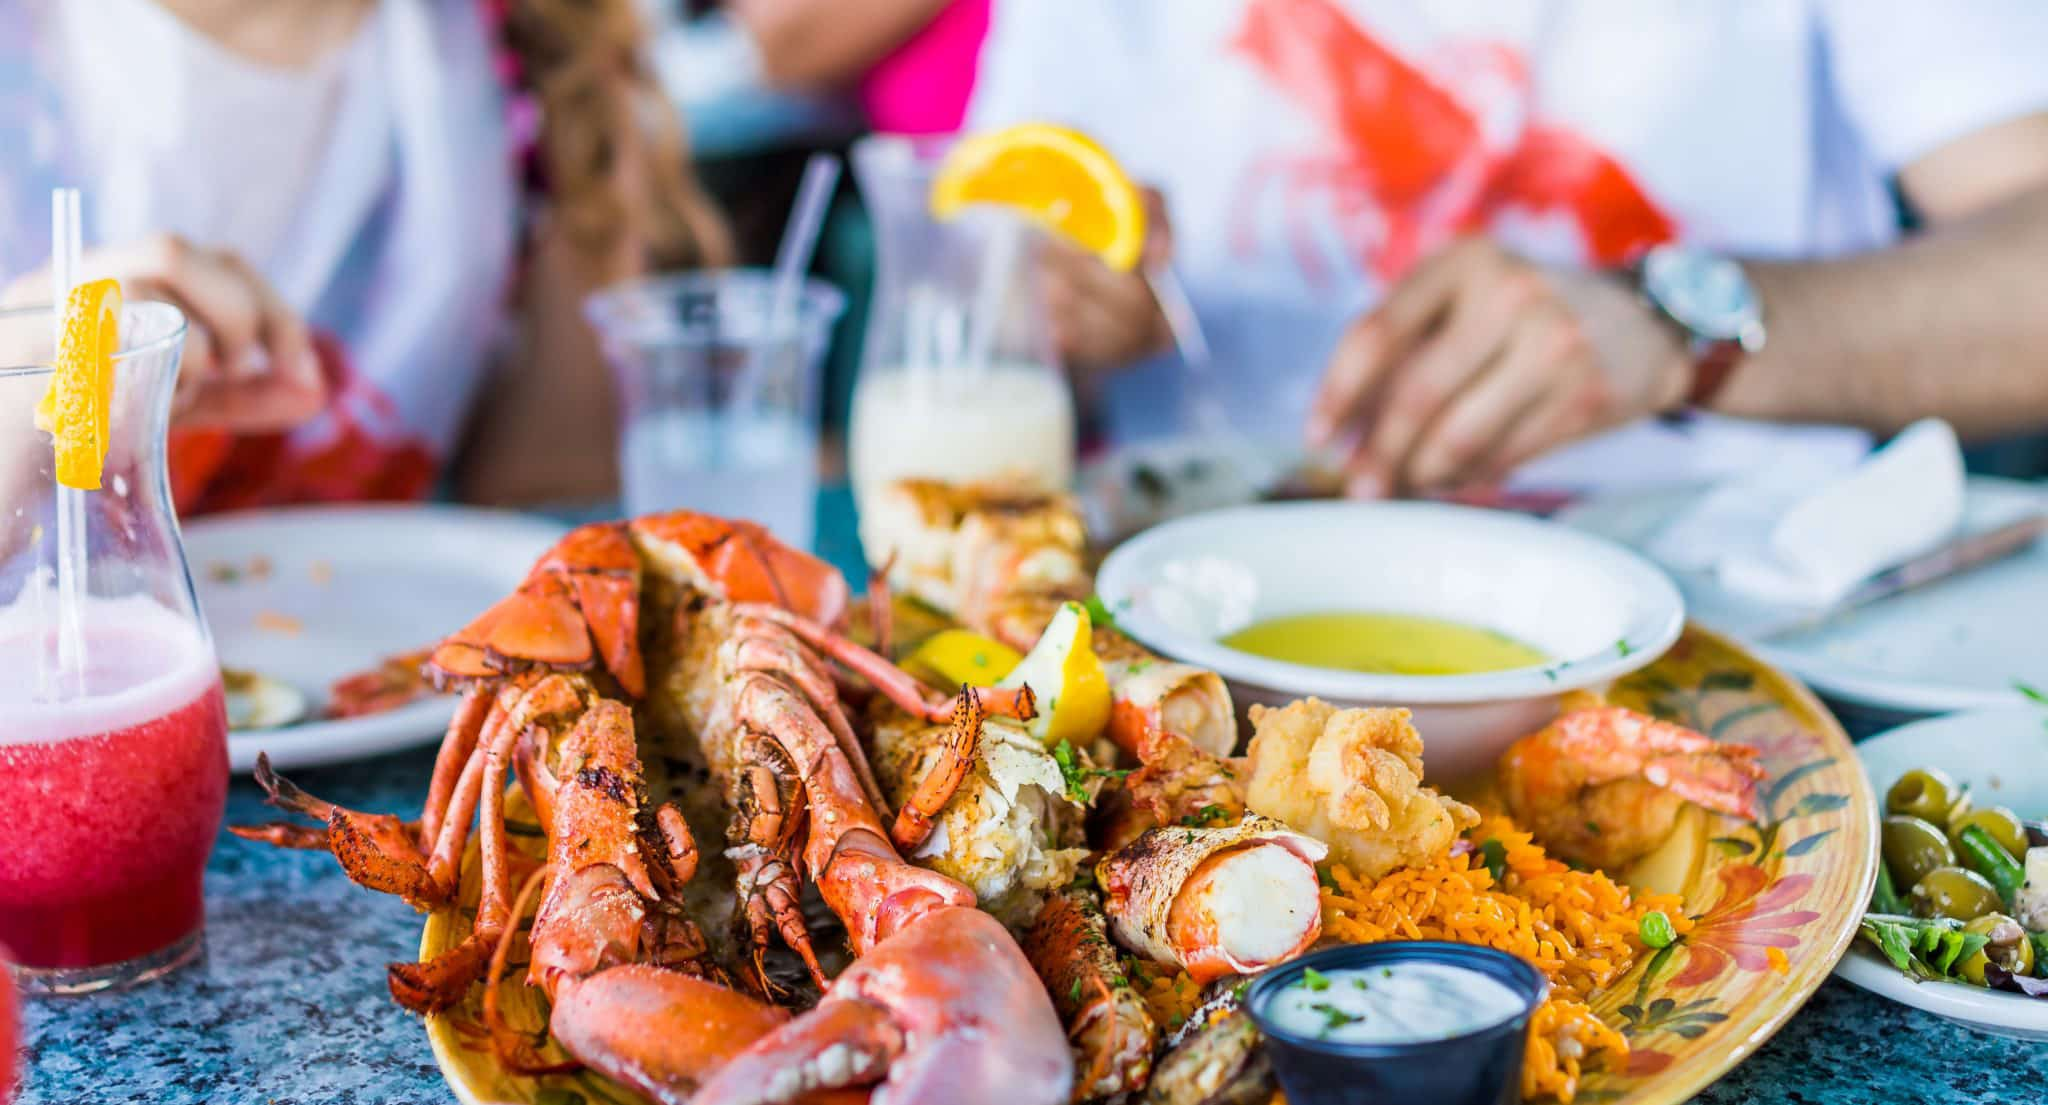 5 of the Best Places to Grab a Bite in Annapolis